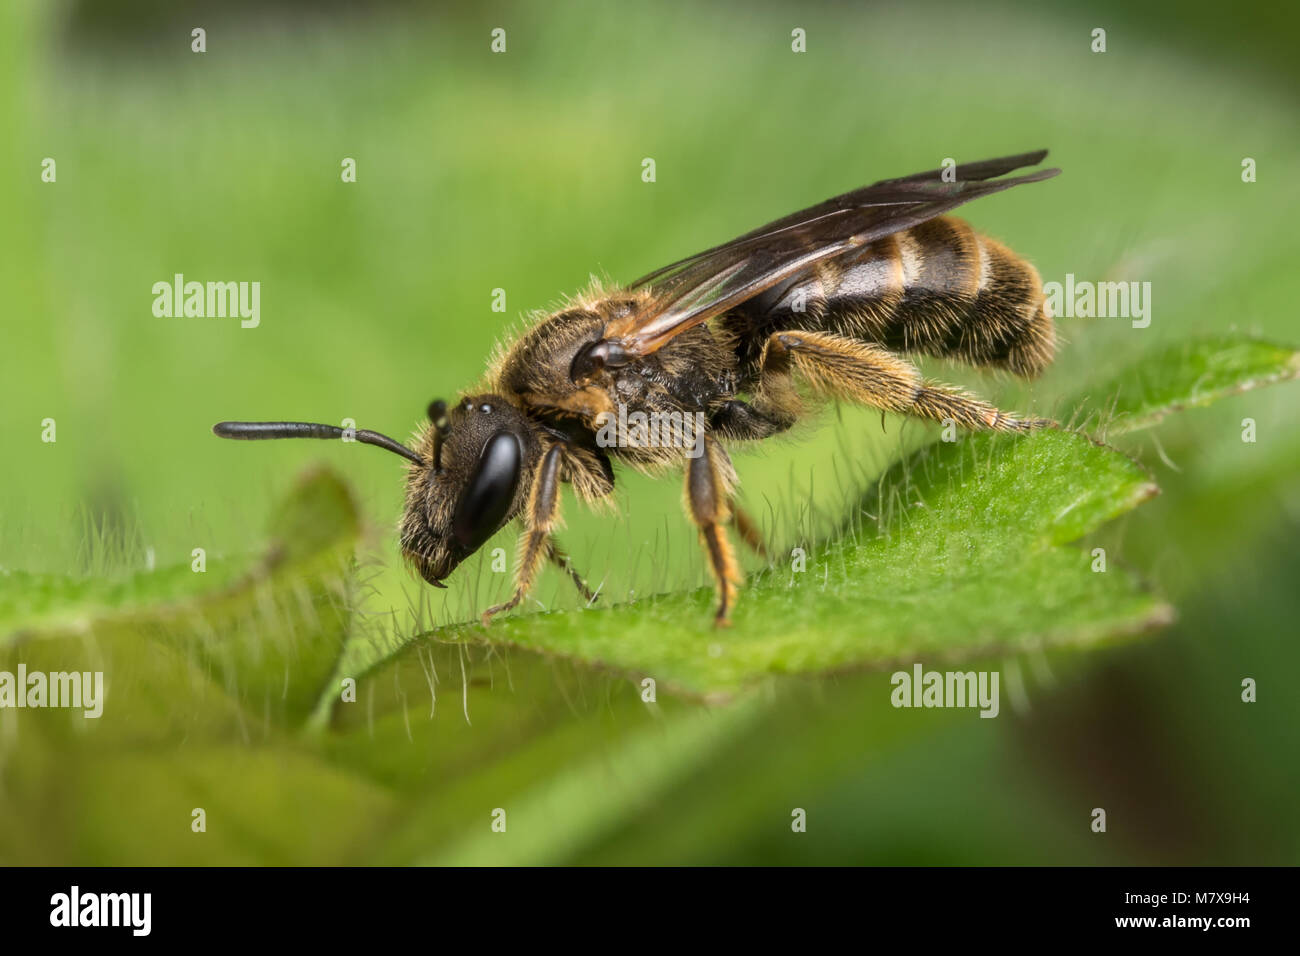 Sweat Bee or Furrow Bee (Halictus rubicundus) resting on a leaf. Tipperary, Ireland - Stock Image